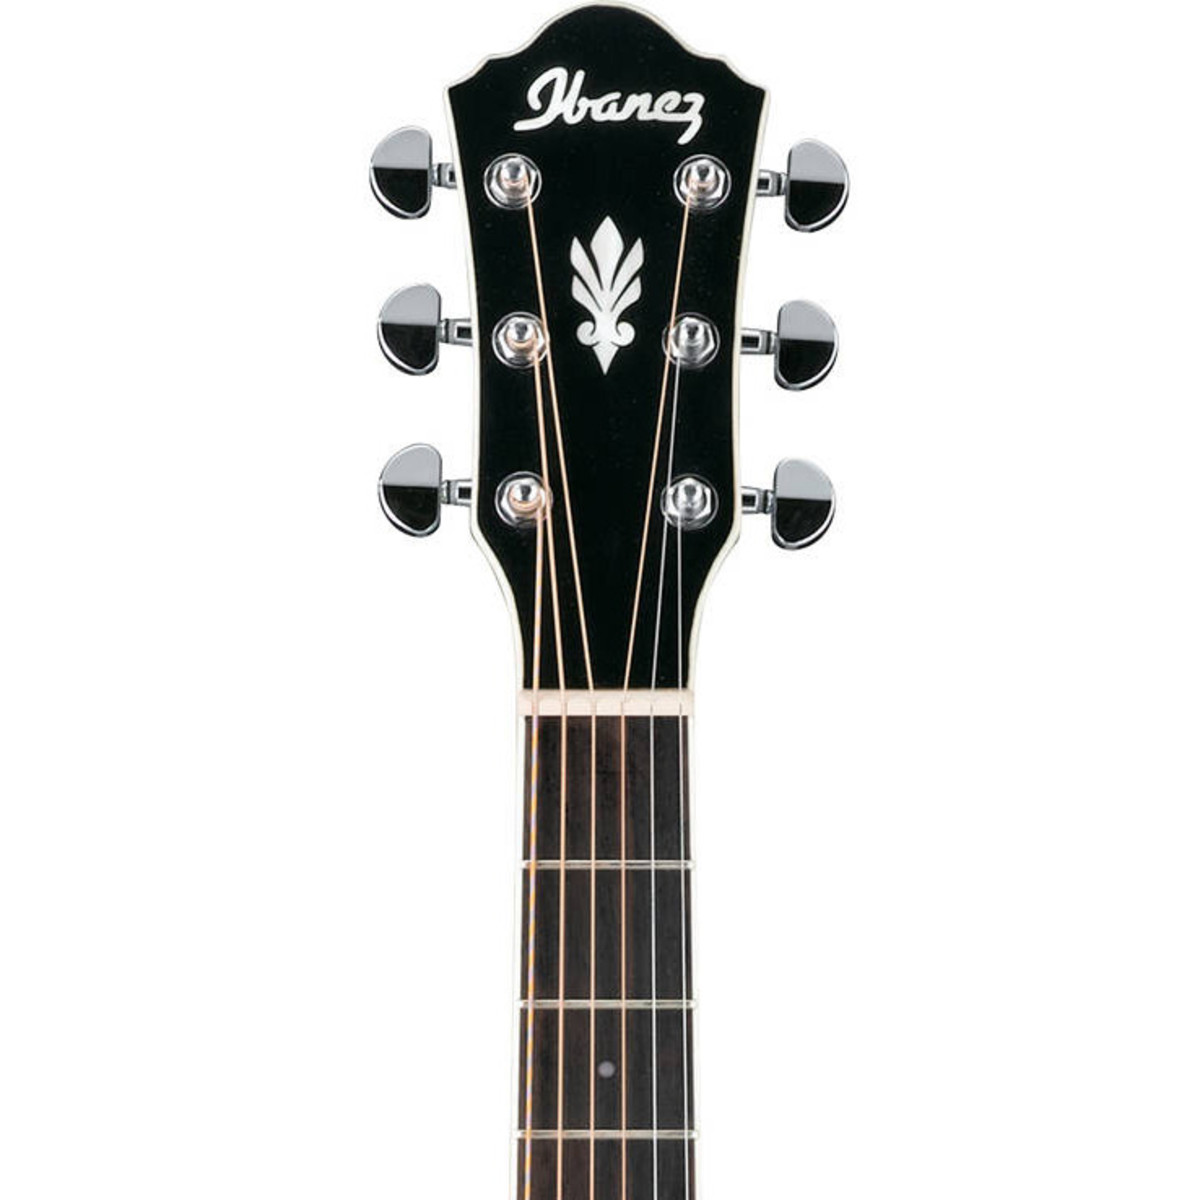 Ibanez Aeg10ii Electro Acoustic Guitar Black B Stock At Gear4music